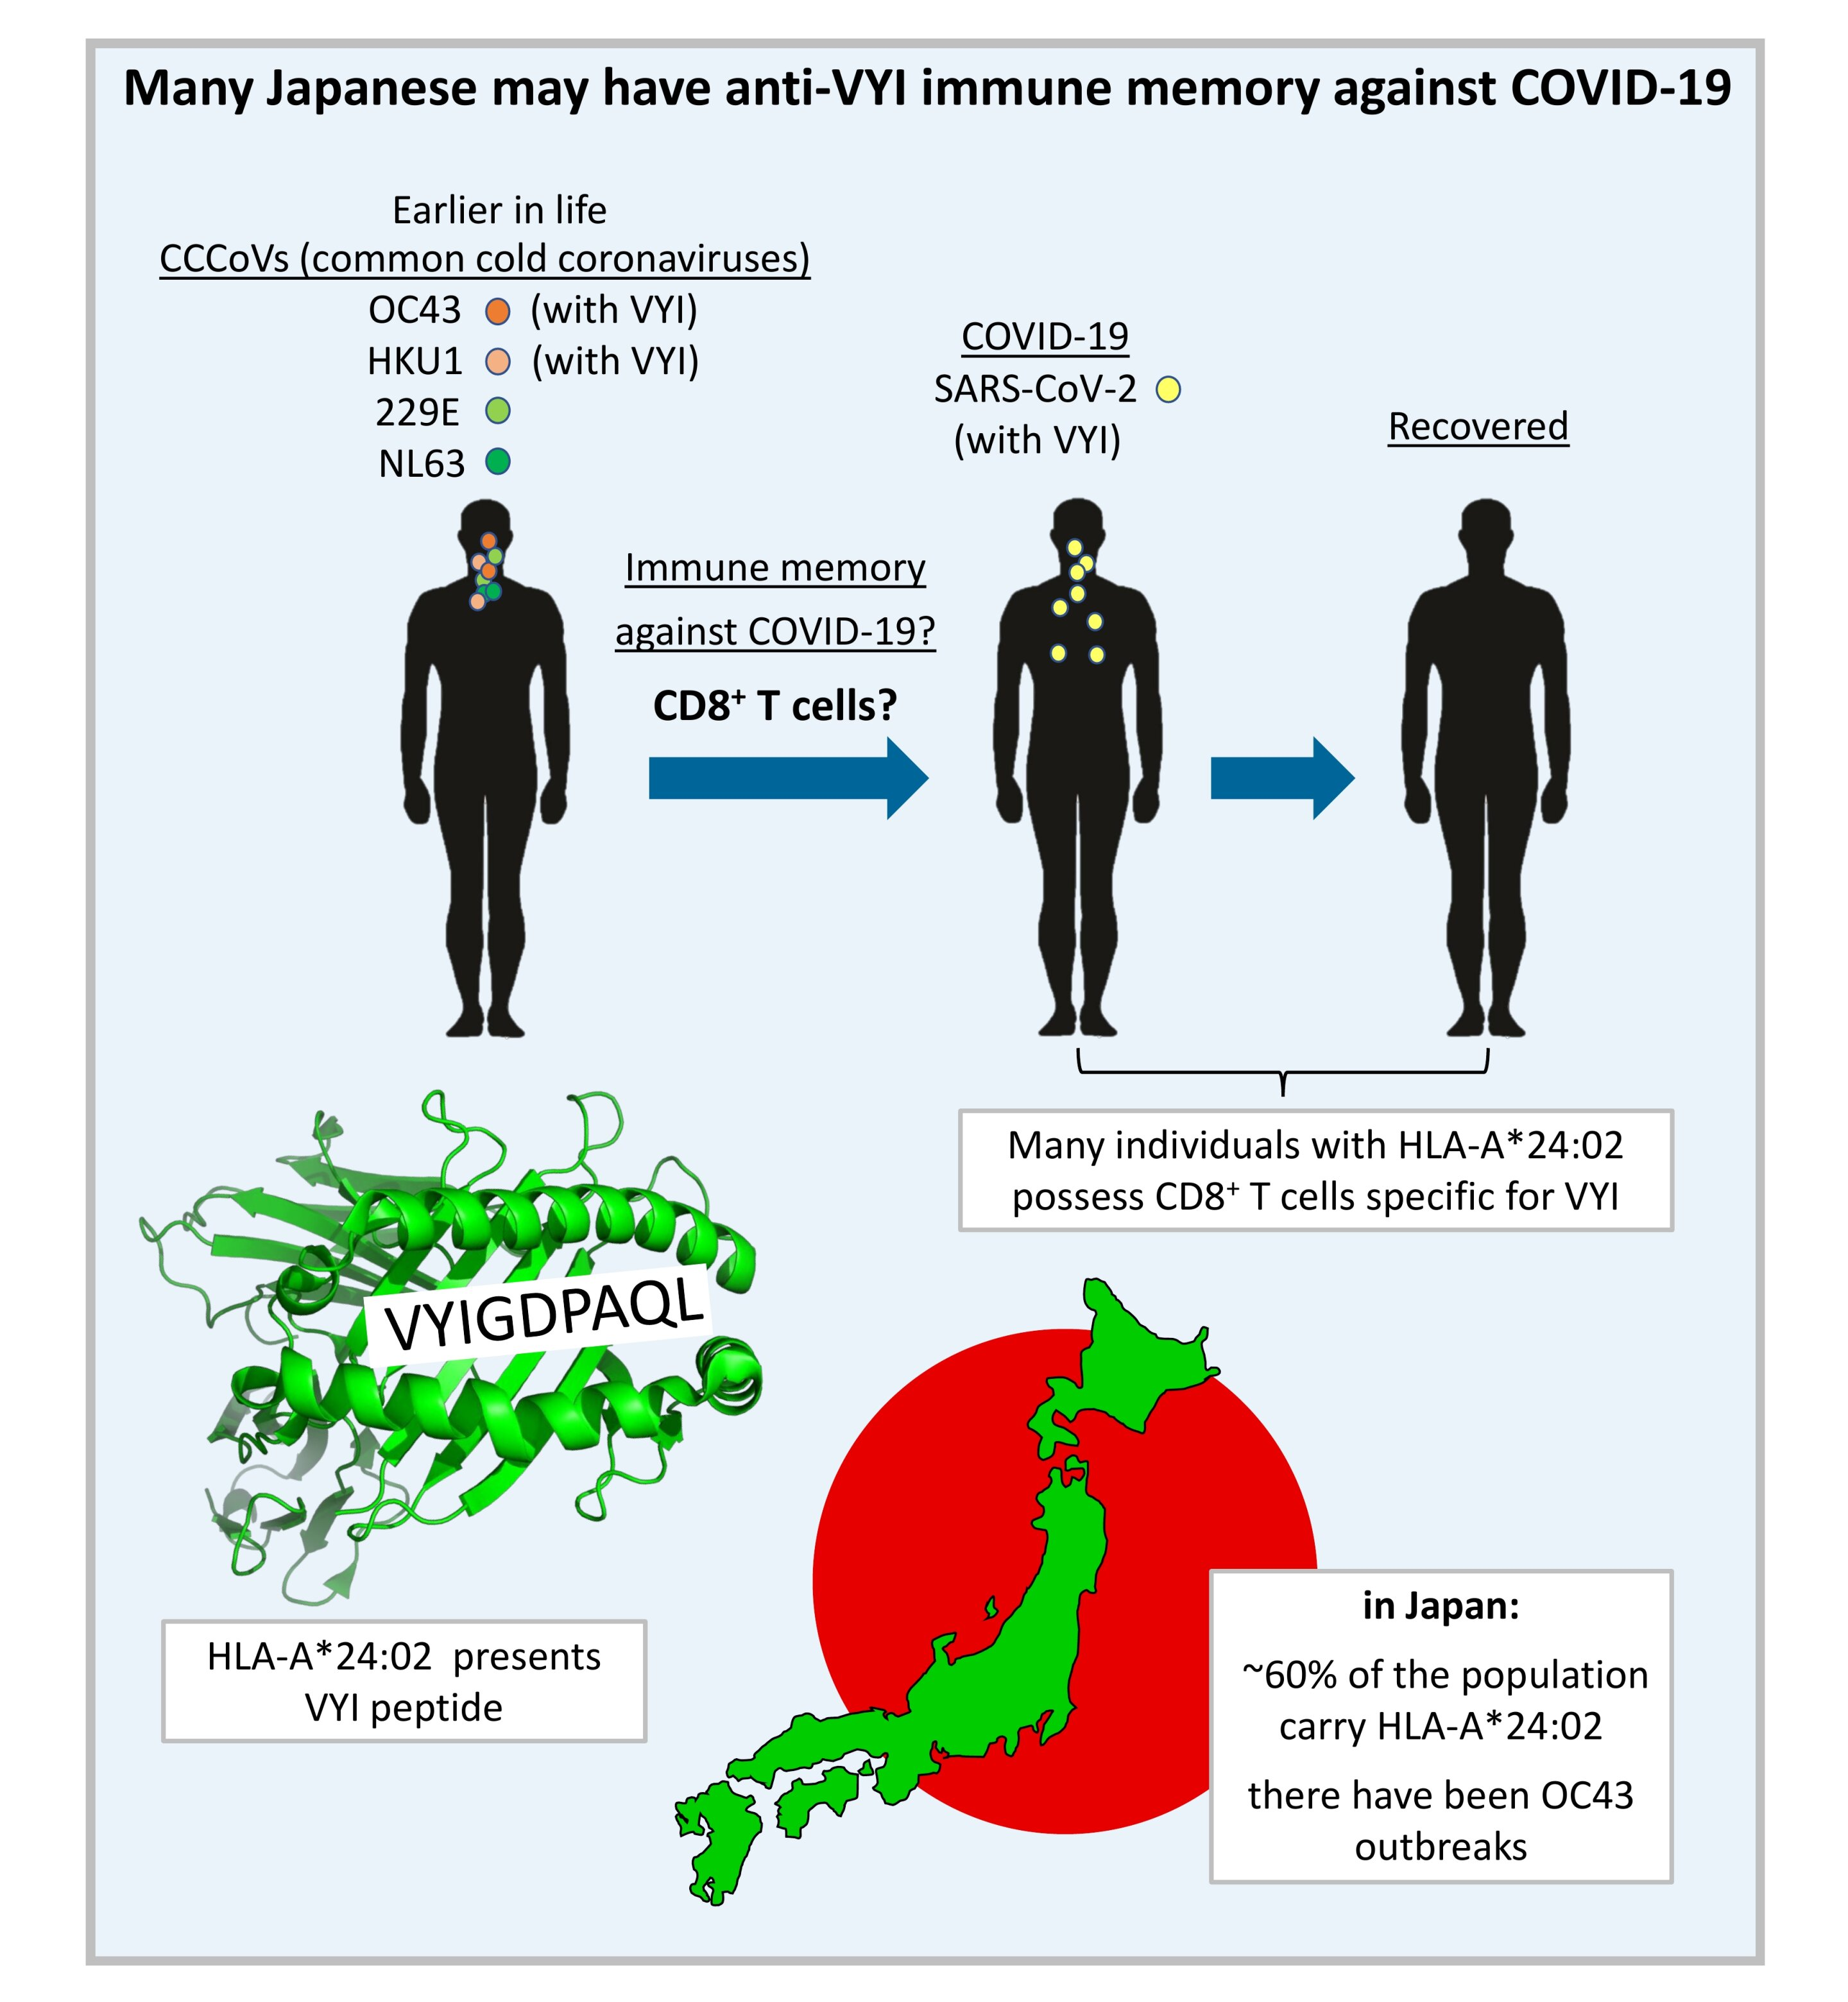 Immune genetics and previous common cold infections could help protect Japan against COVID-19